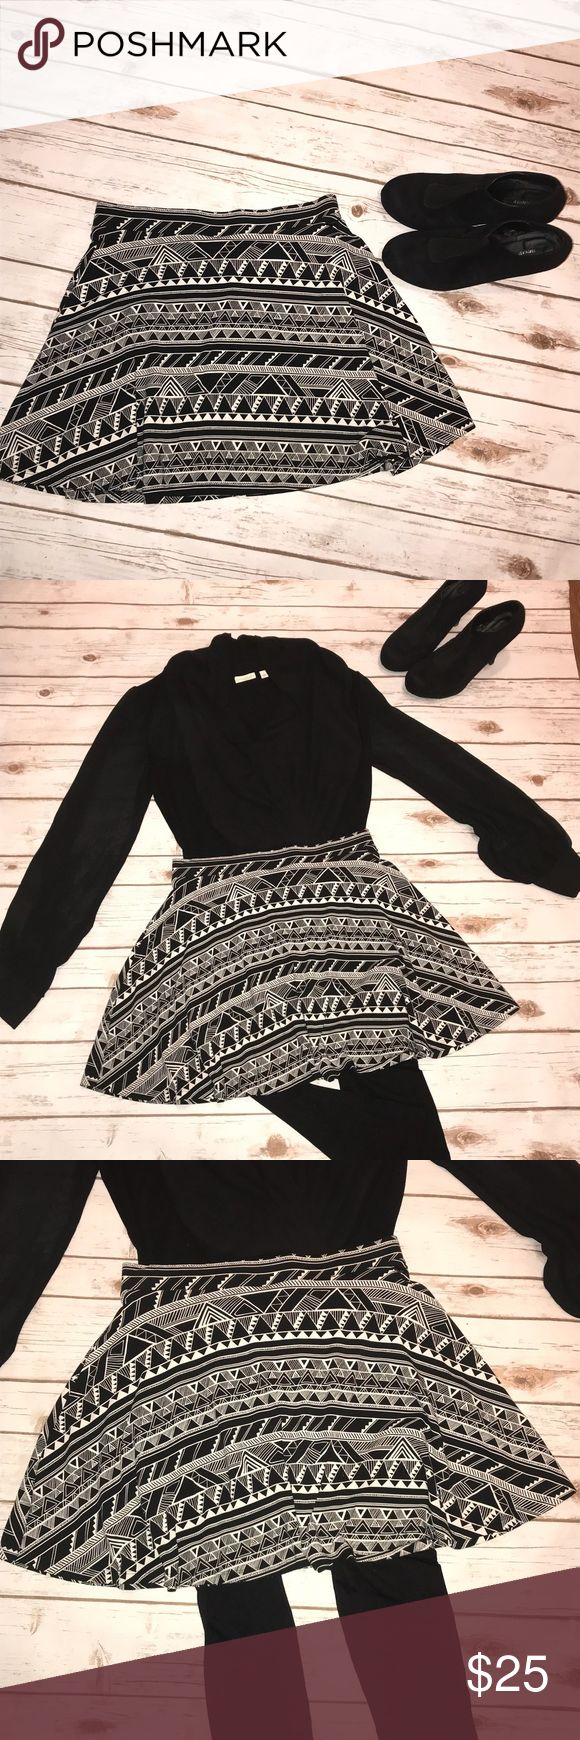 VS Pink Black & White Aztec Print Skirt Super cute, looks new! Pictures say it all - super soft skirt that you can wear with leggings in the winter or with a simple black top in the summer! Stretchy material. PINK Victoria's Secret Skirts Mini